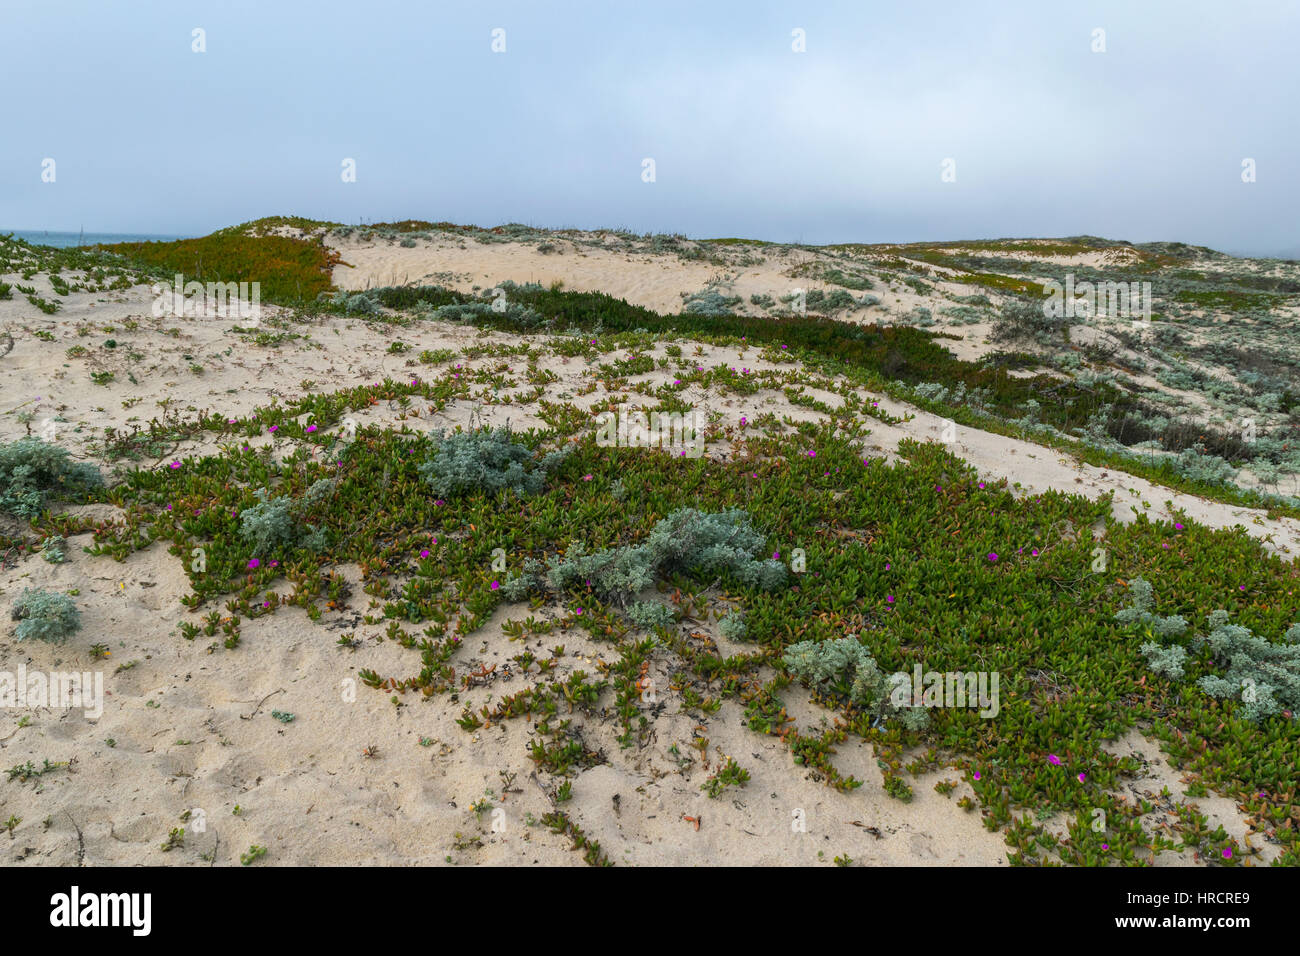 Misty day on Sandy beach near Monterey Bay, Central Pacific coast of California, USA - Stock Image